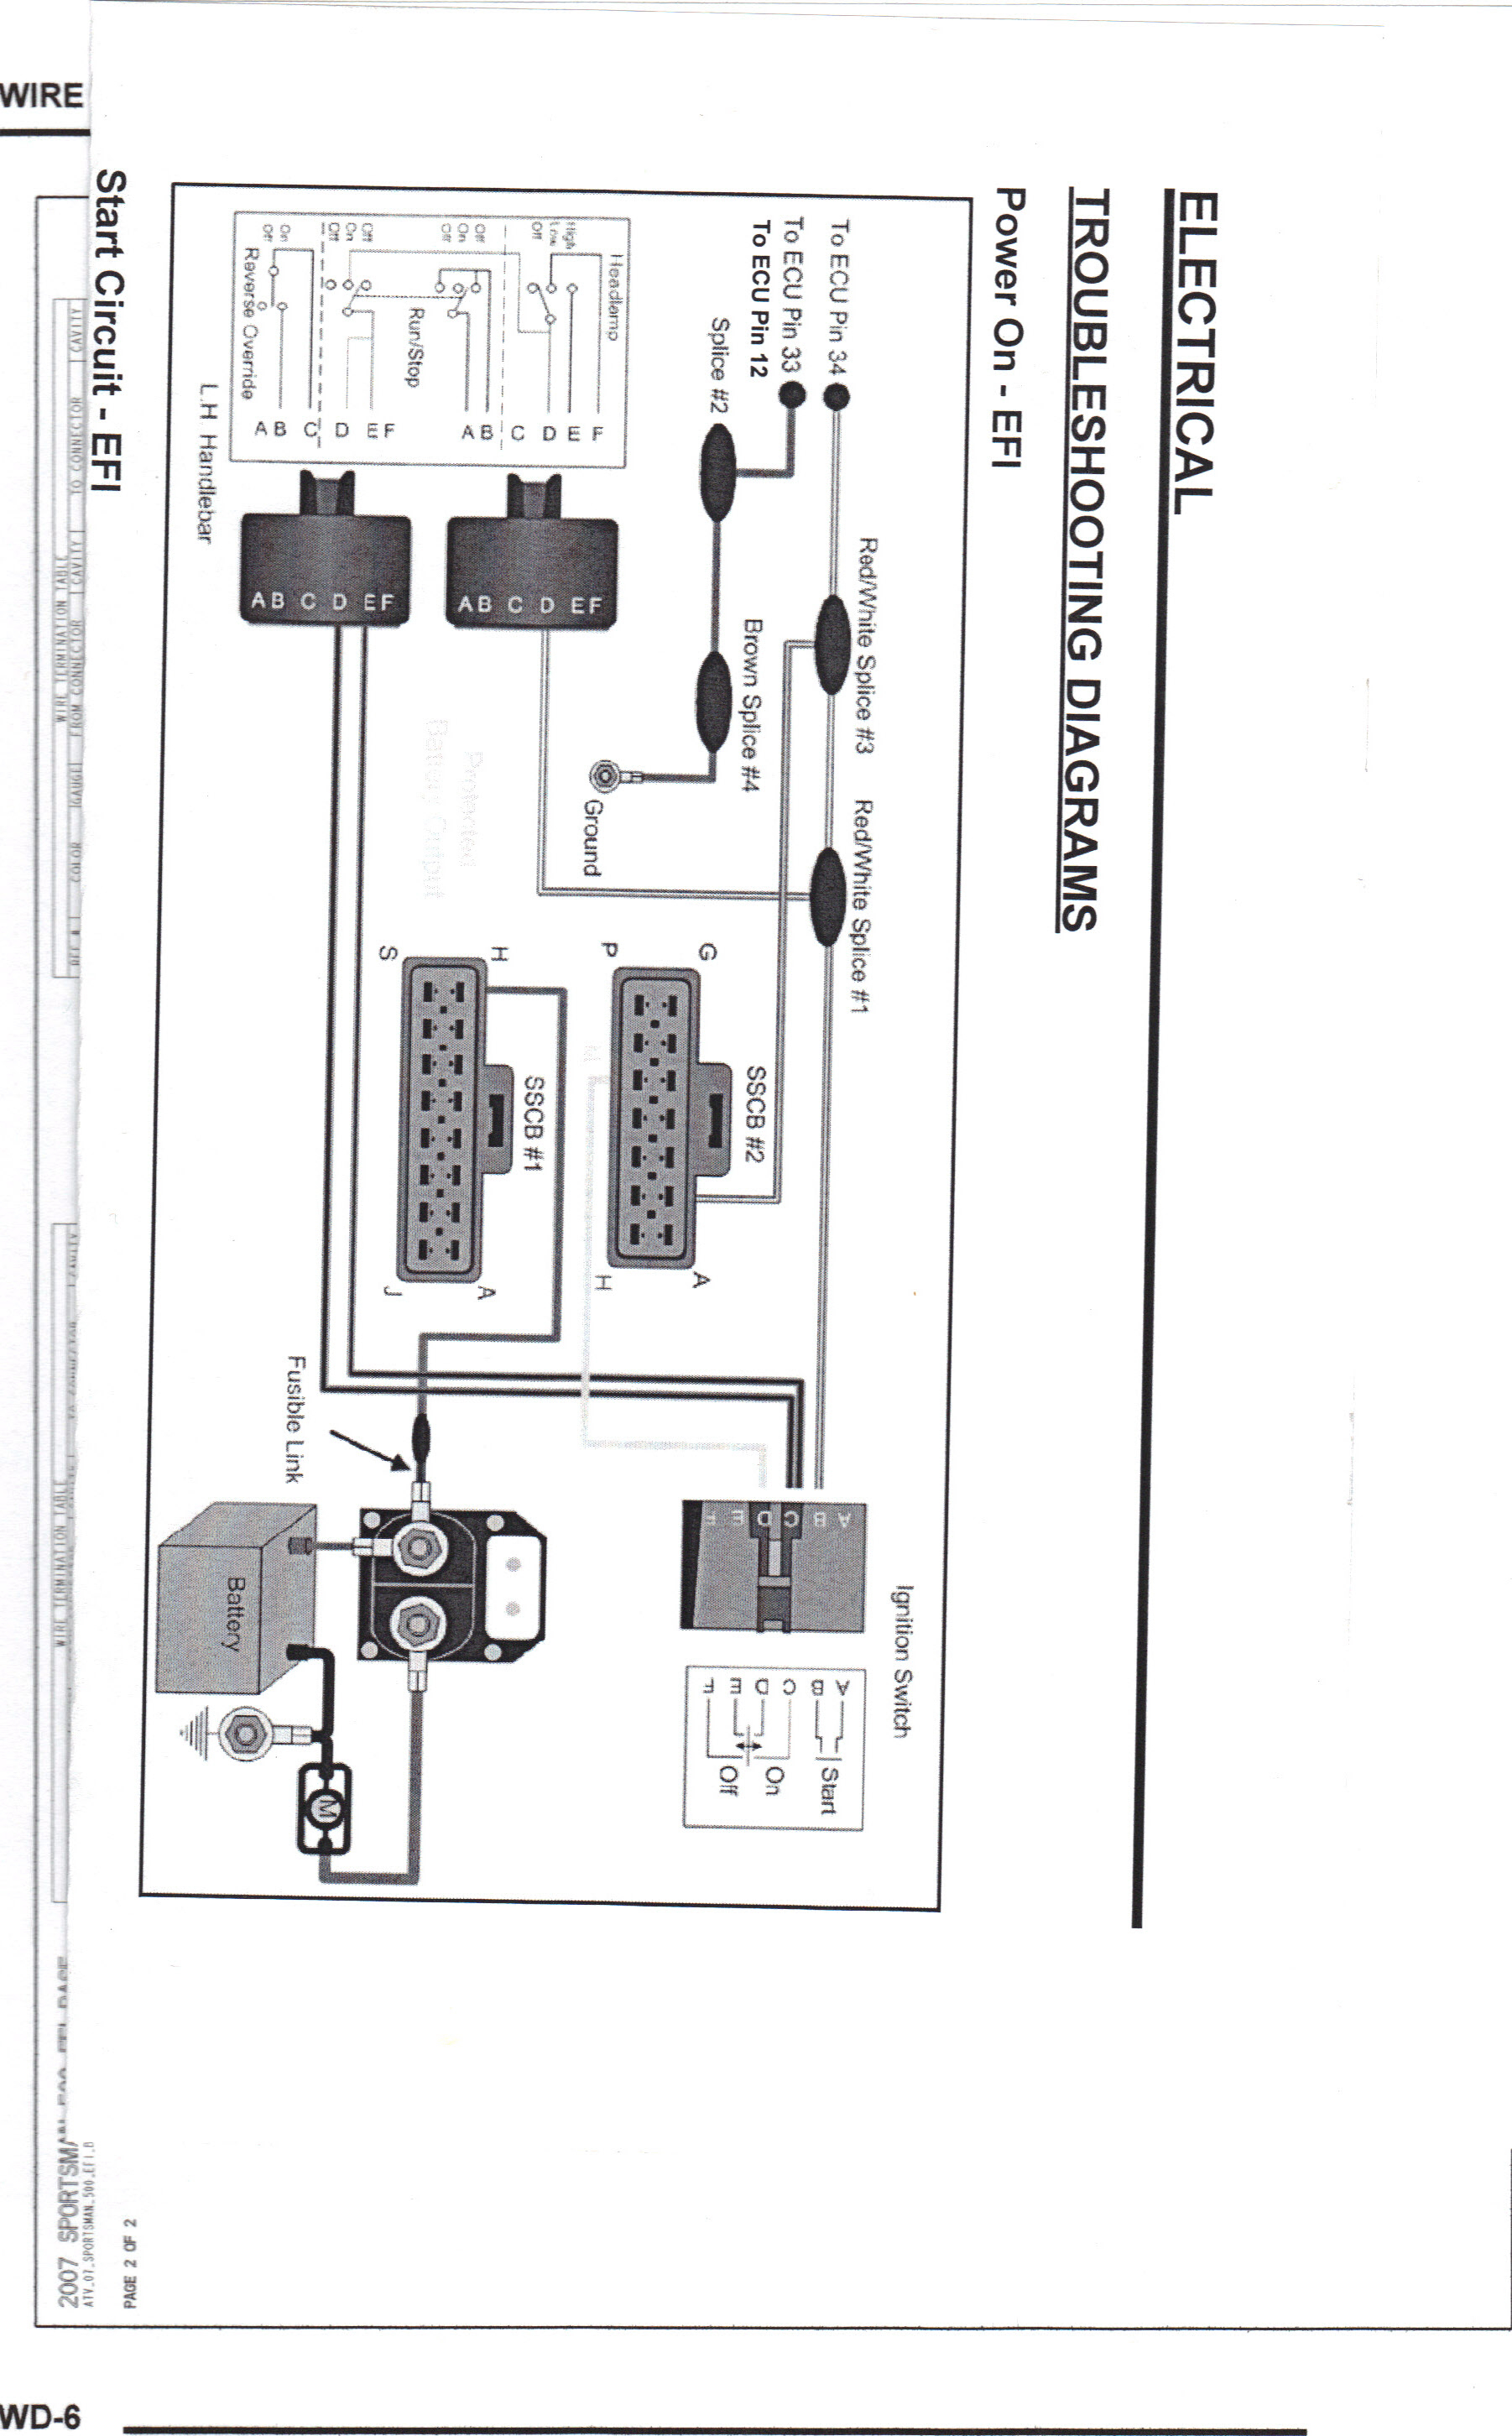 Ford Edge Wiring Diagrams Free - Auto Electrical Wiring Diagram Xc Sp Wiring Diagram on